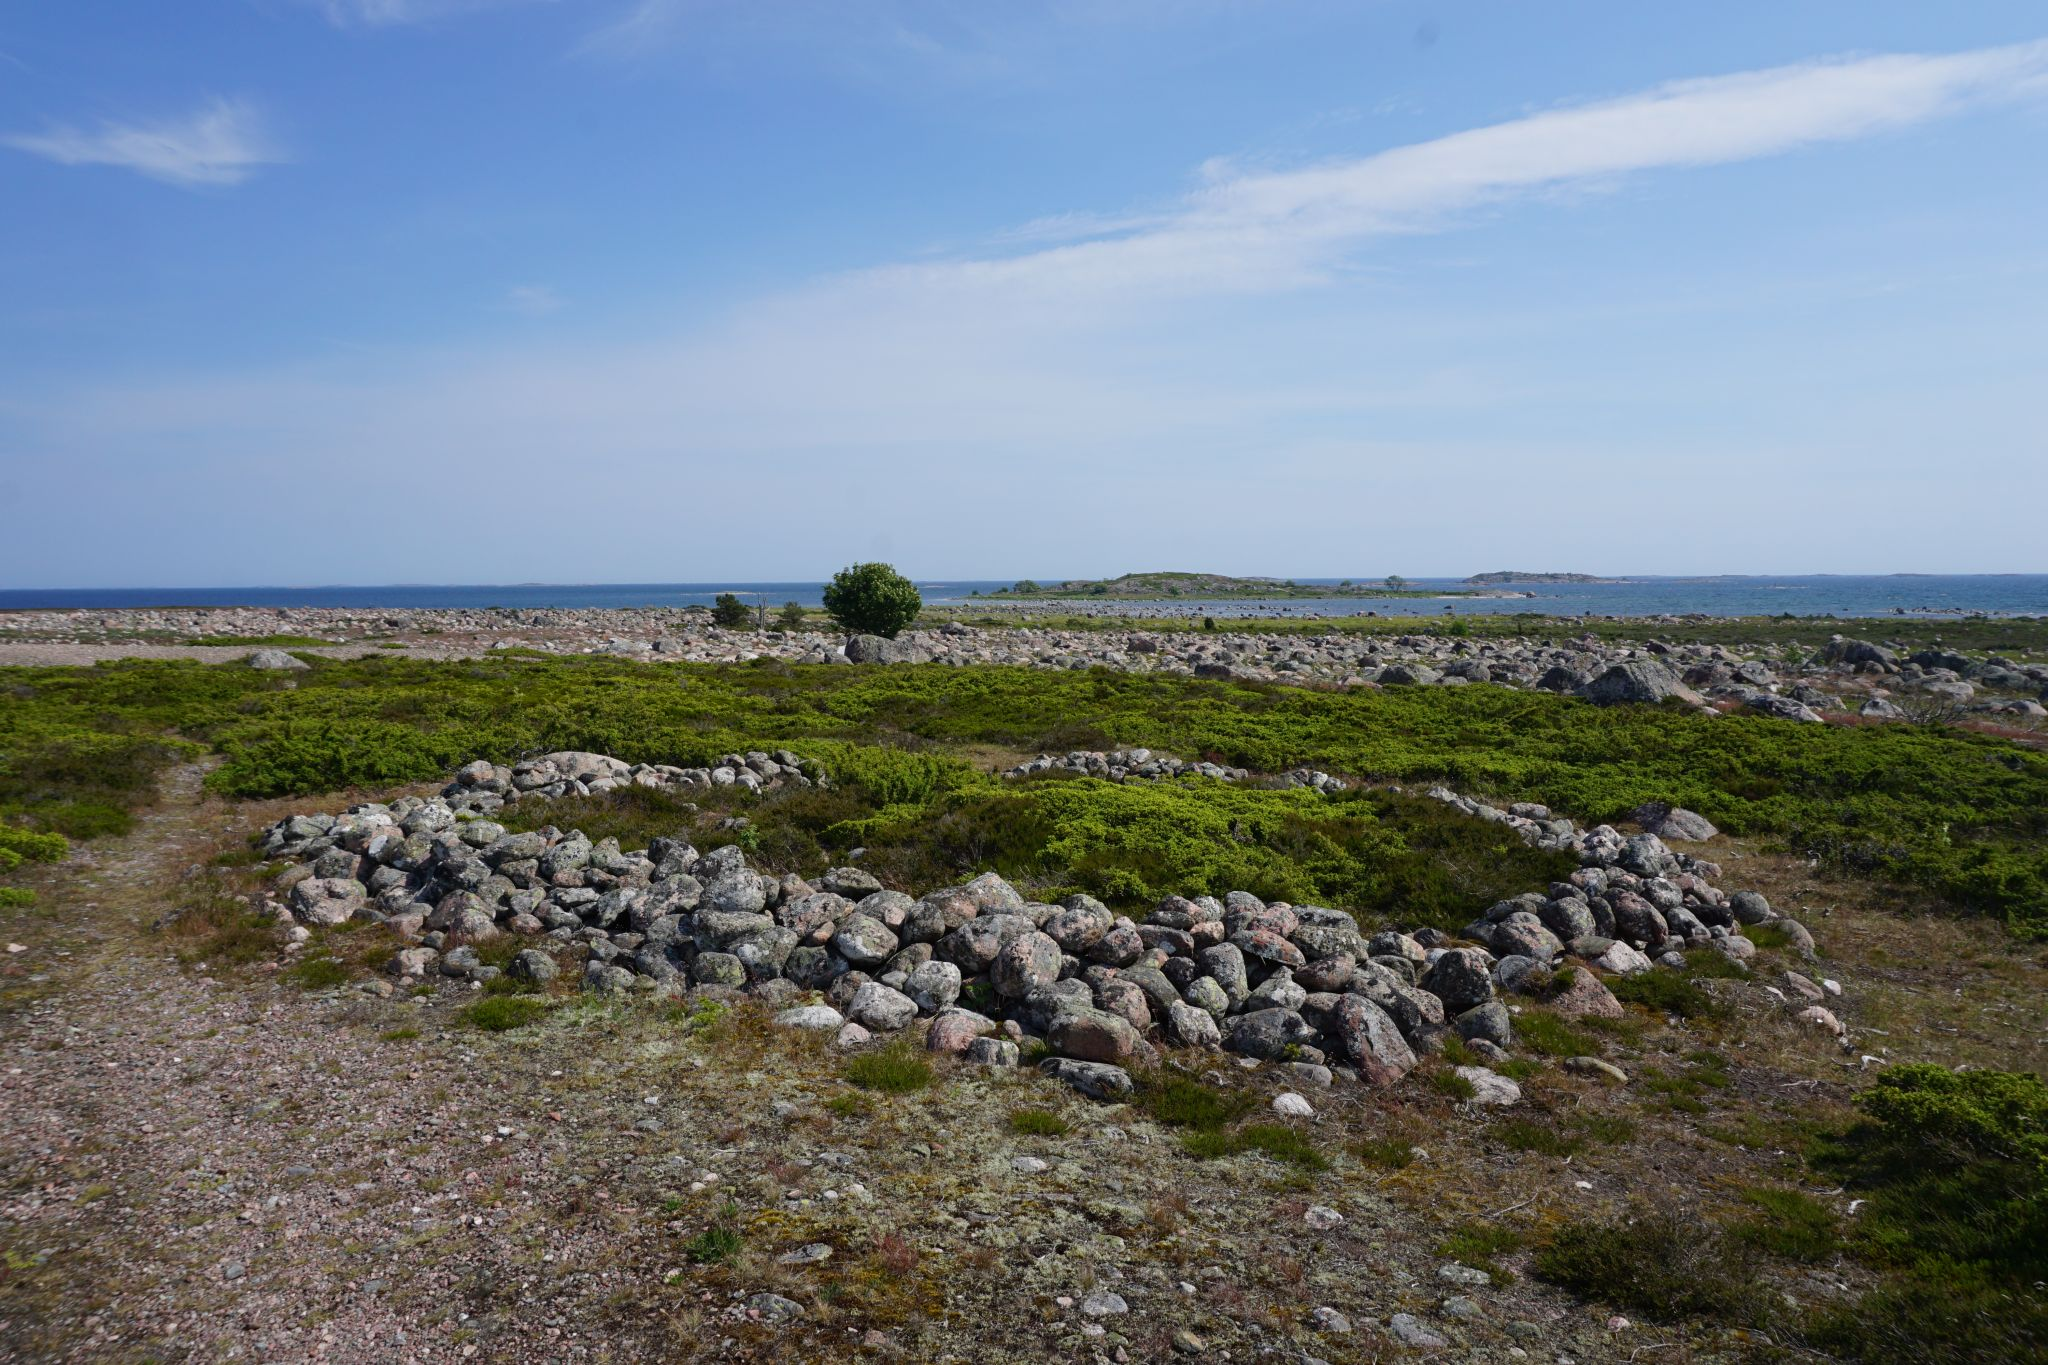 Archaeological remains on the island of Jurmo in Finland